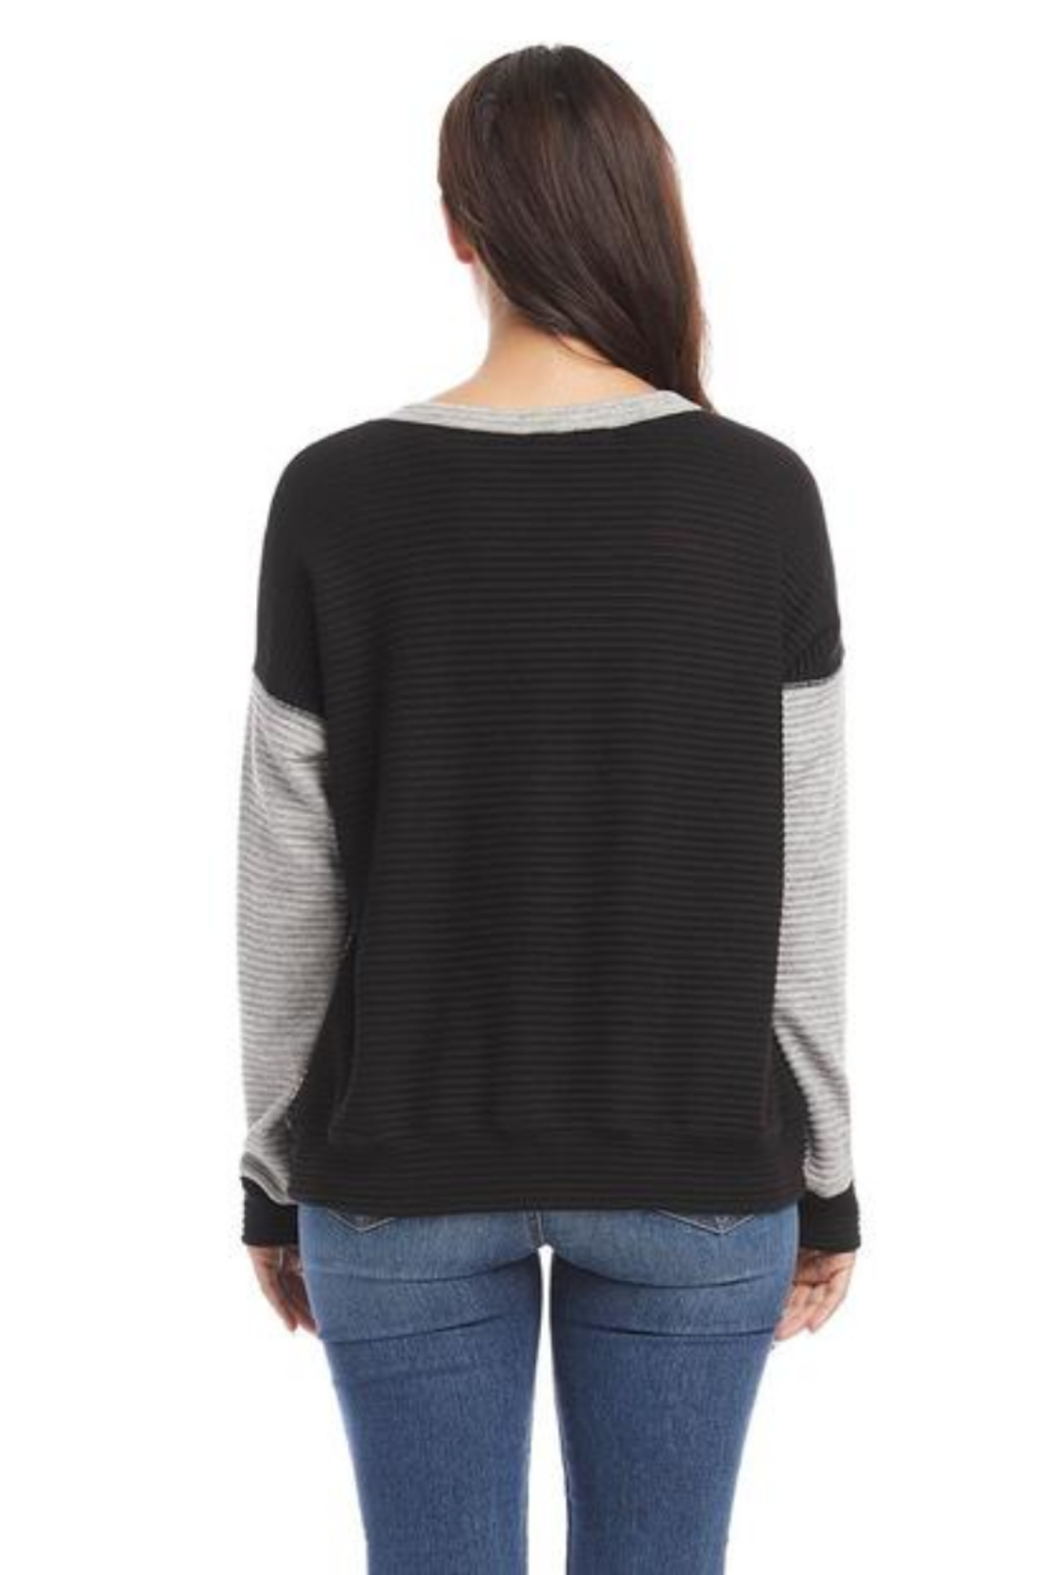 Karen Kane 4L31217 - Colorblock Sweater - Side Cropped Image